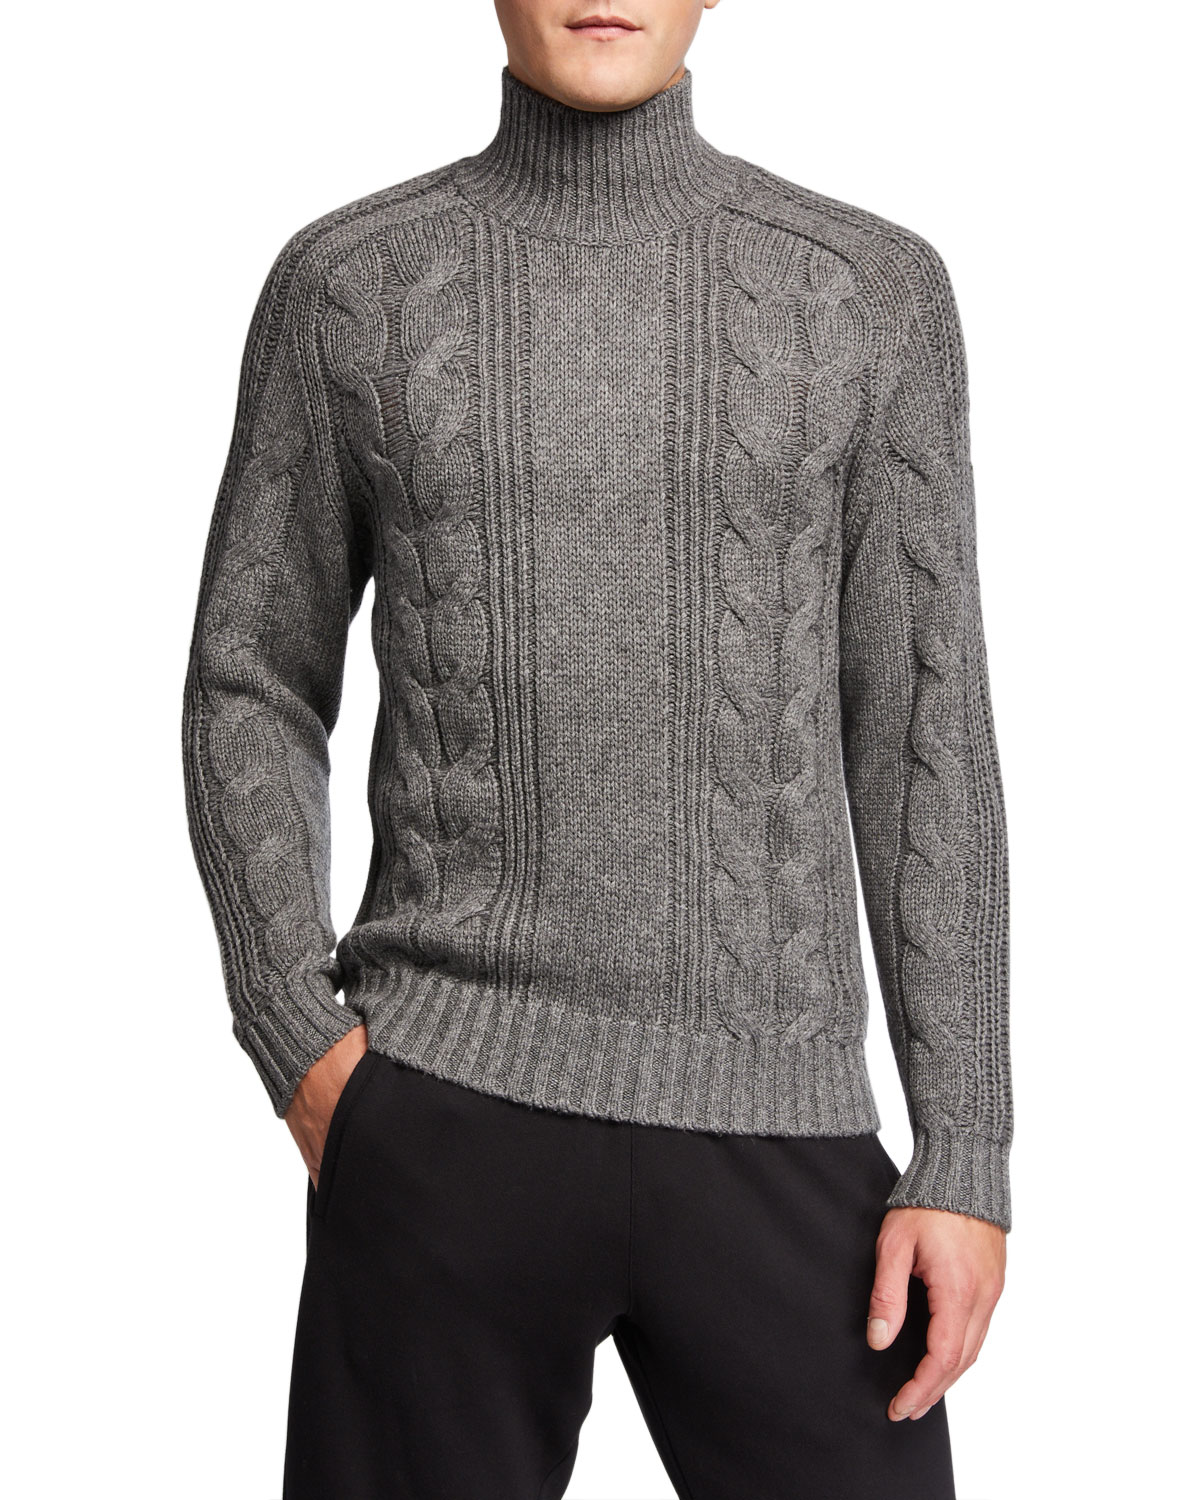 Vince Men's Solid Cable-Knit Turtleneck Sweater